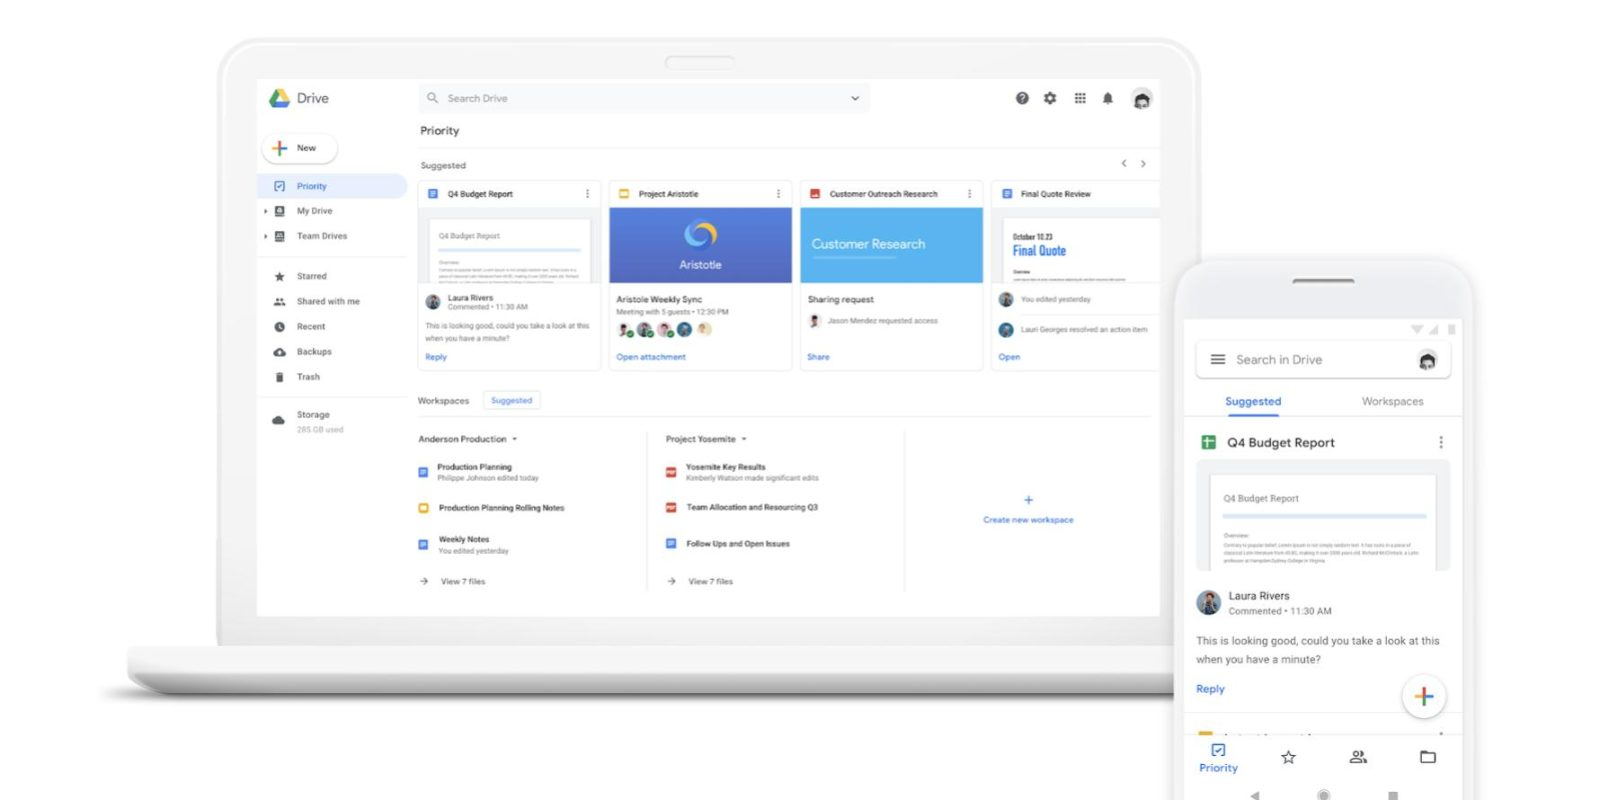 Google Drive 'Priority' page and 'Workspaces' rolling out to all G Suite editions